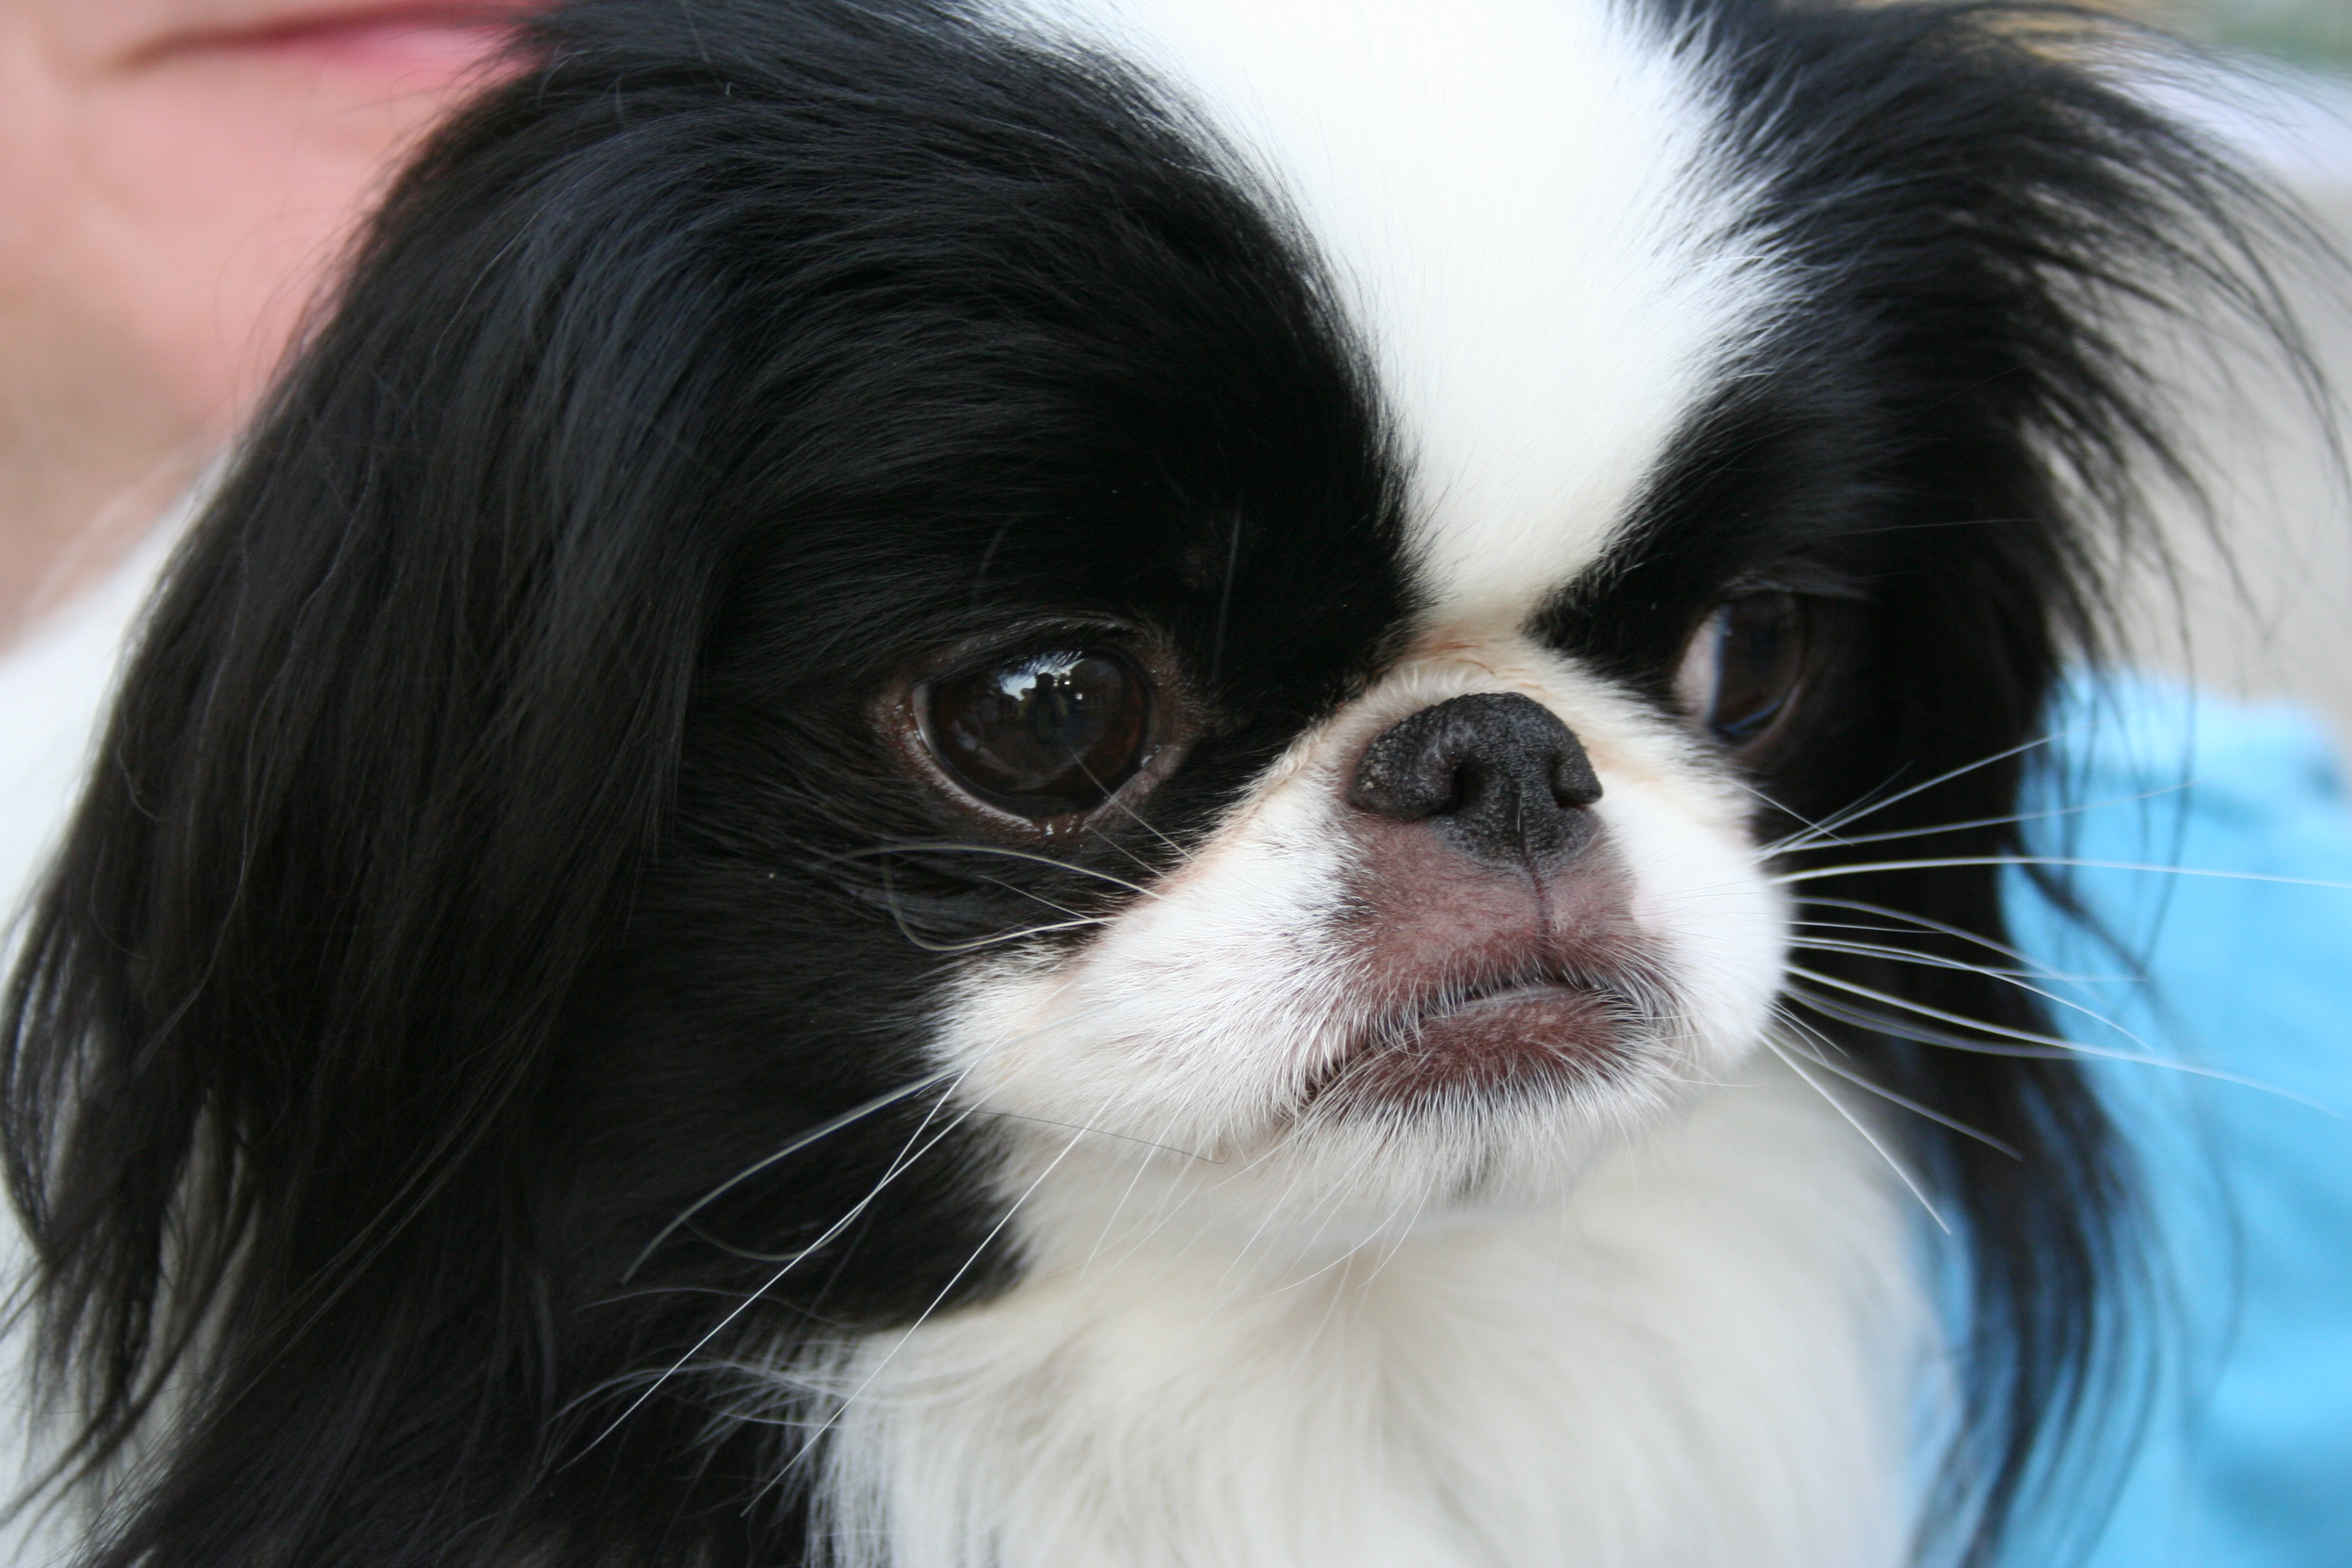 File:Japanese Chin portrait.jpg - Wikimedia Commons